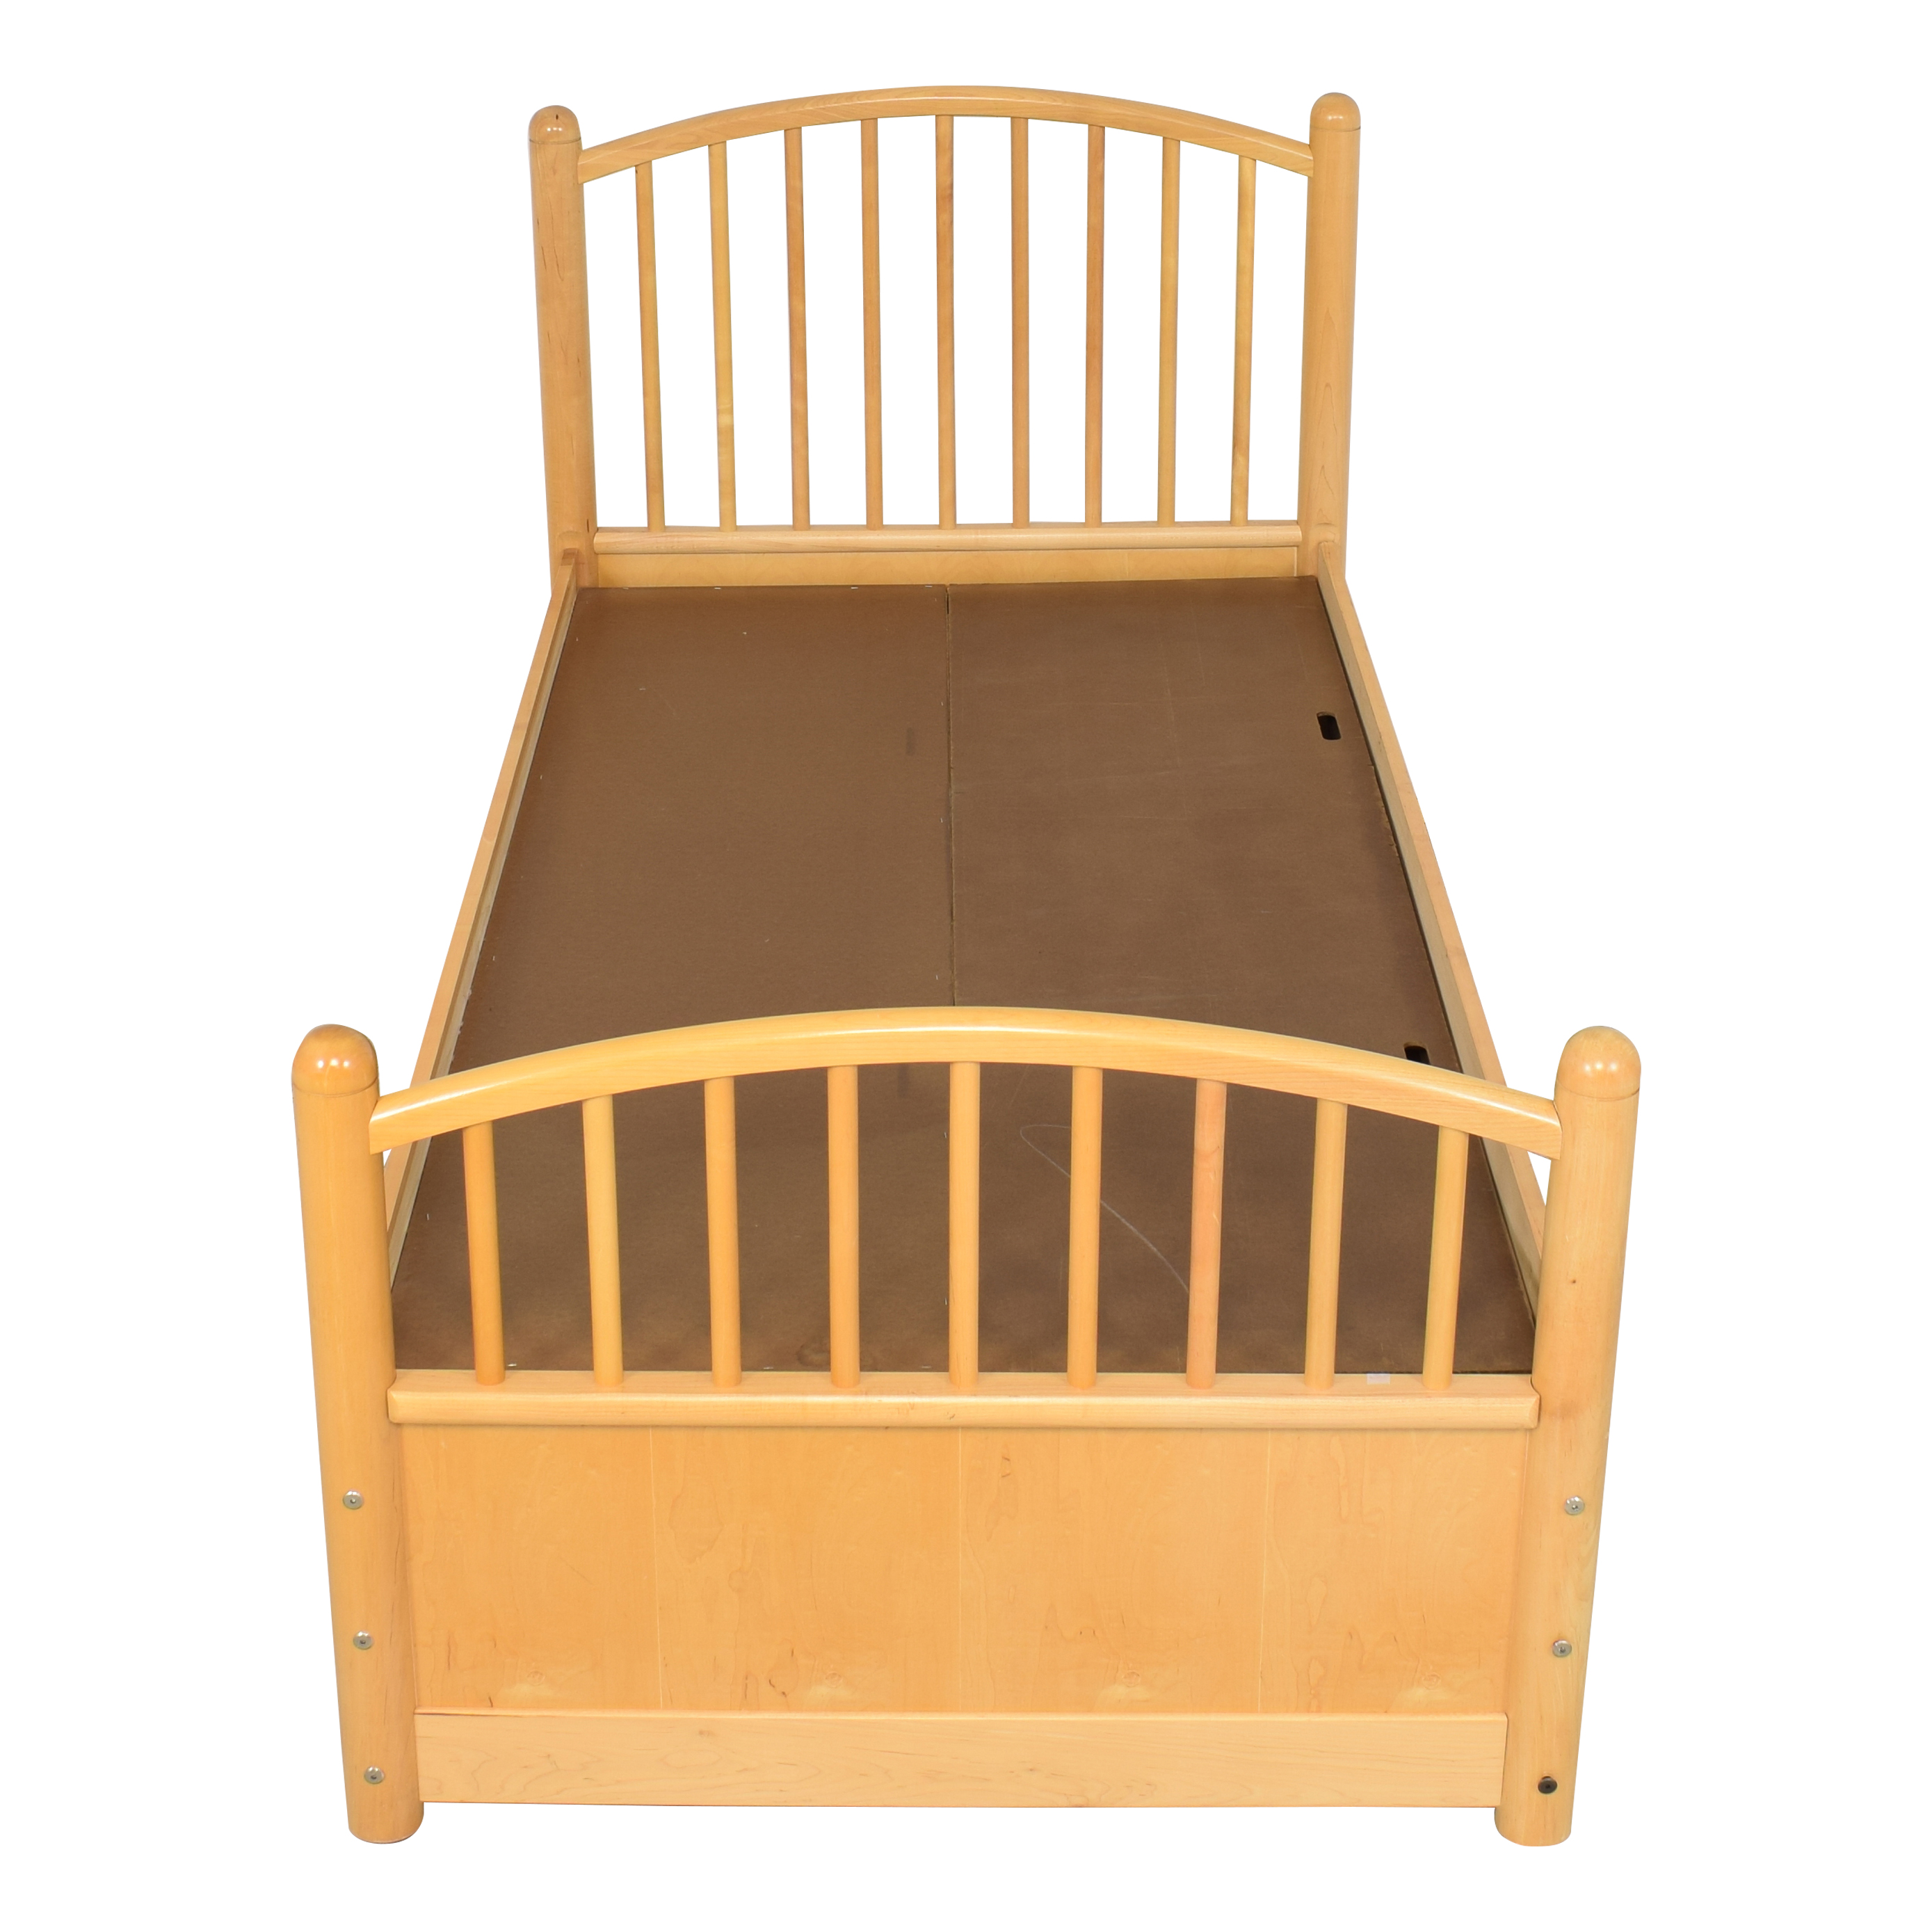 Stanley Furniture Stanley Furniture Twin Bed second hand